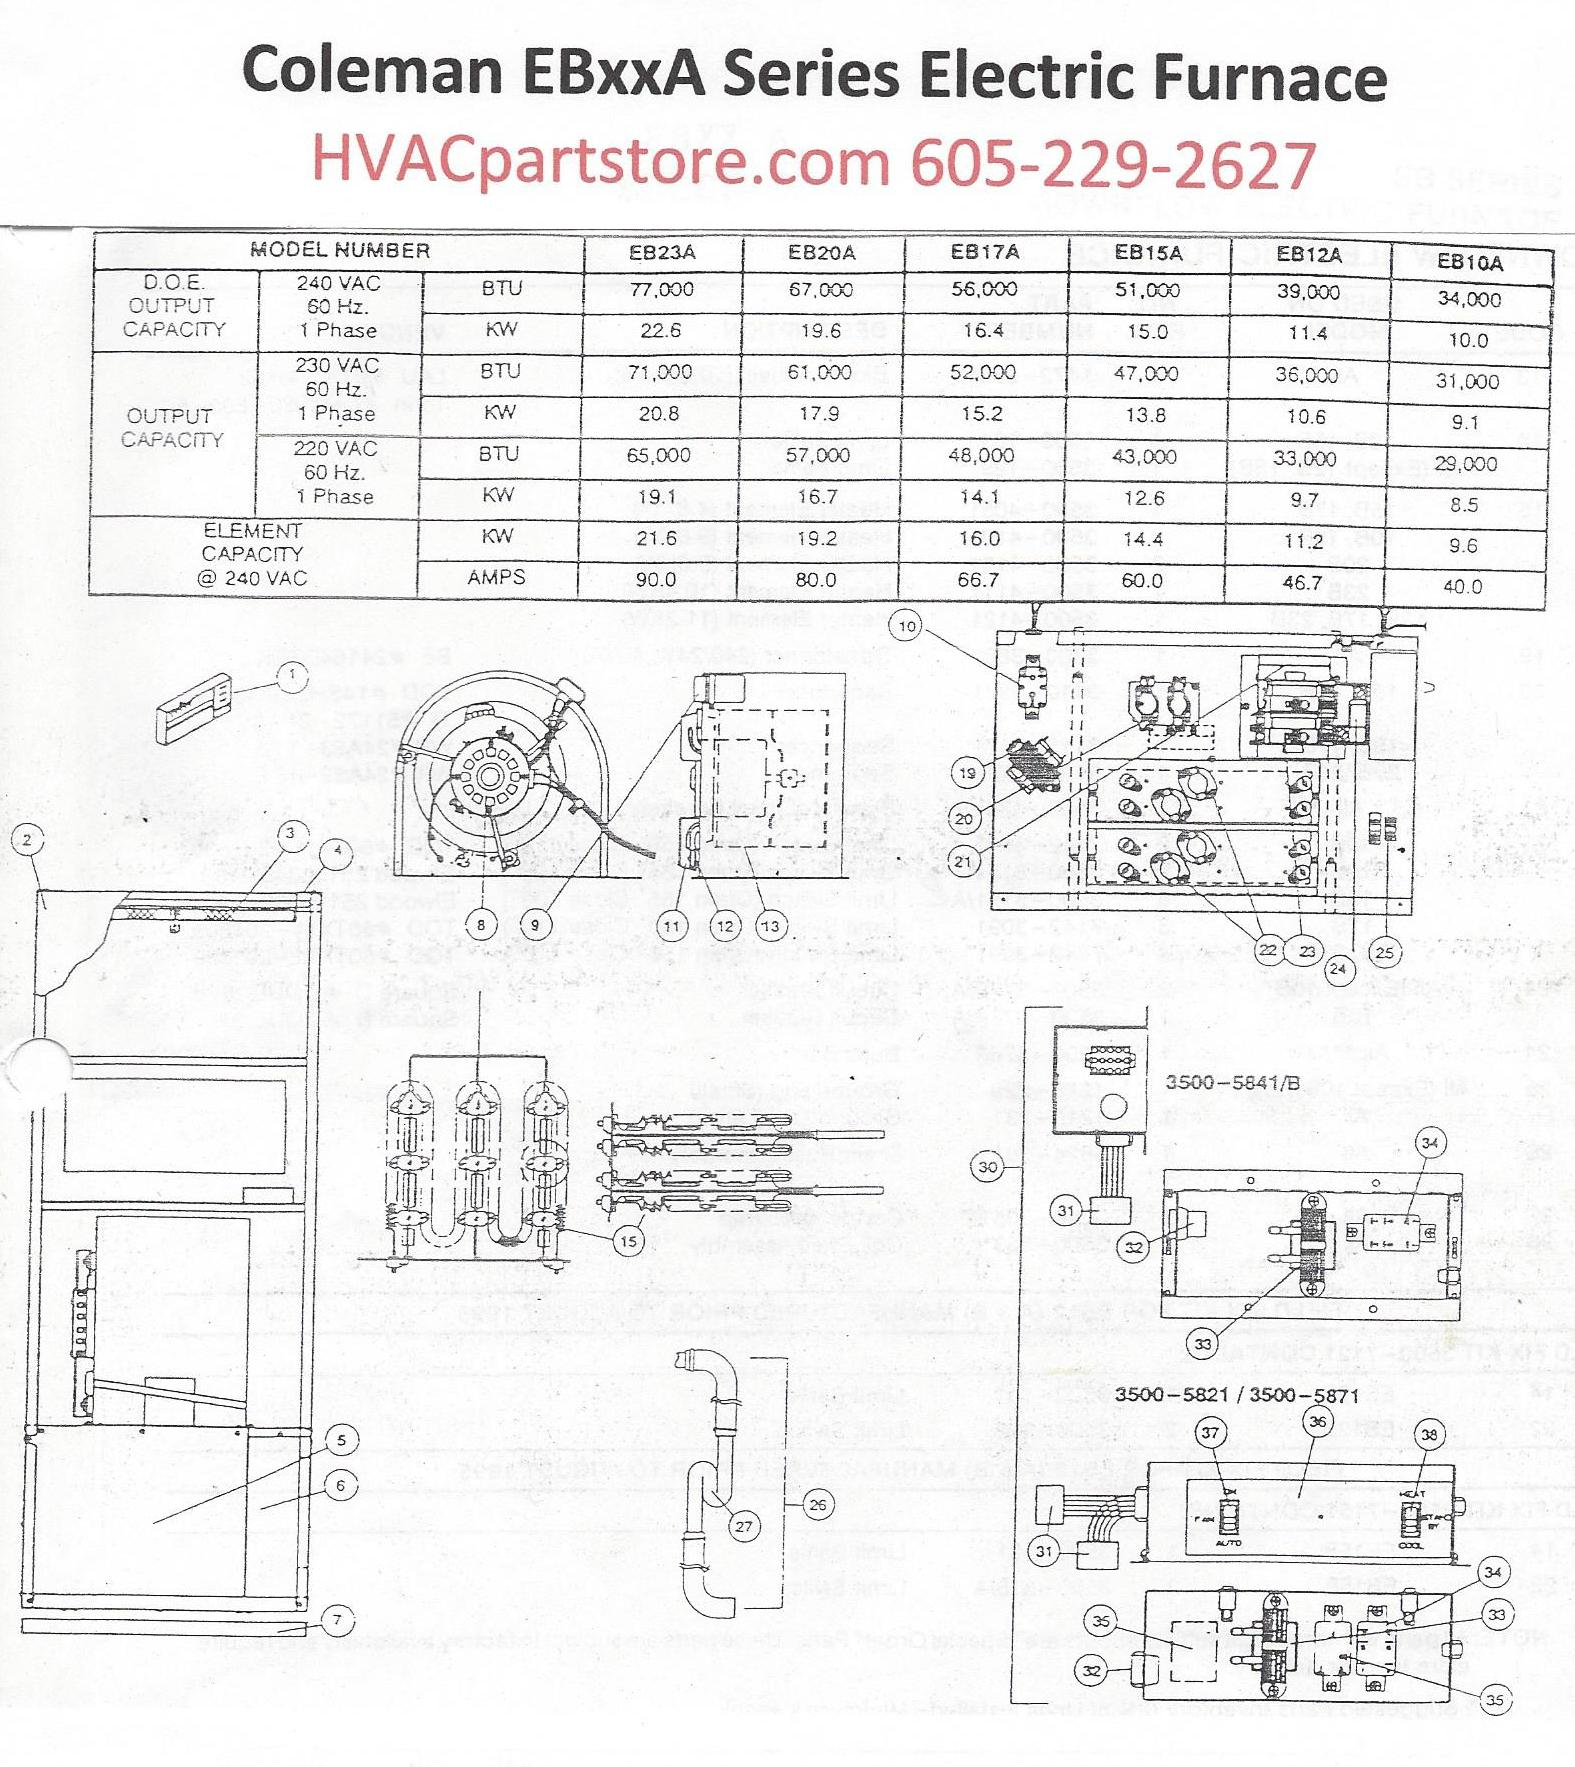 Ebxxaseriesdiagram Fb E Ea B A F E on electric heat sequencer wiring diagram for furnace